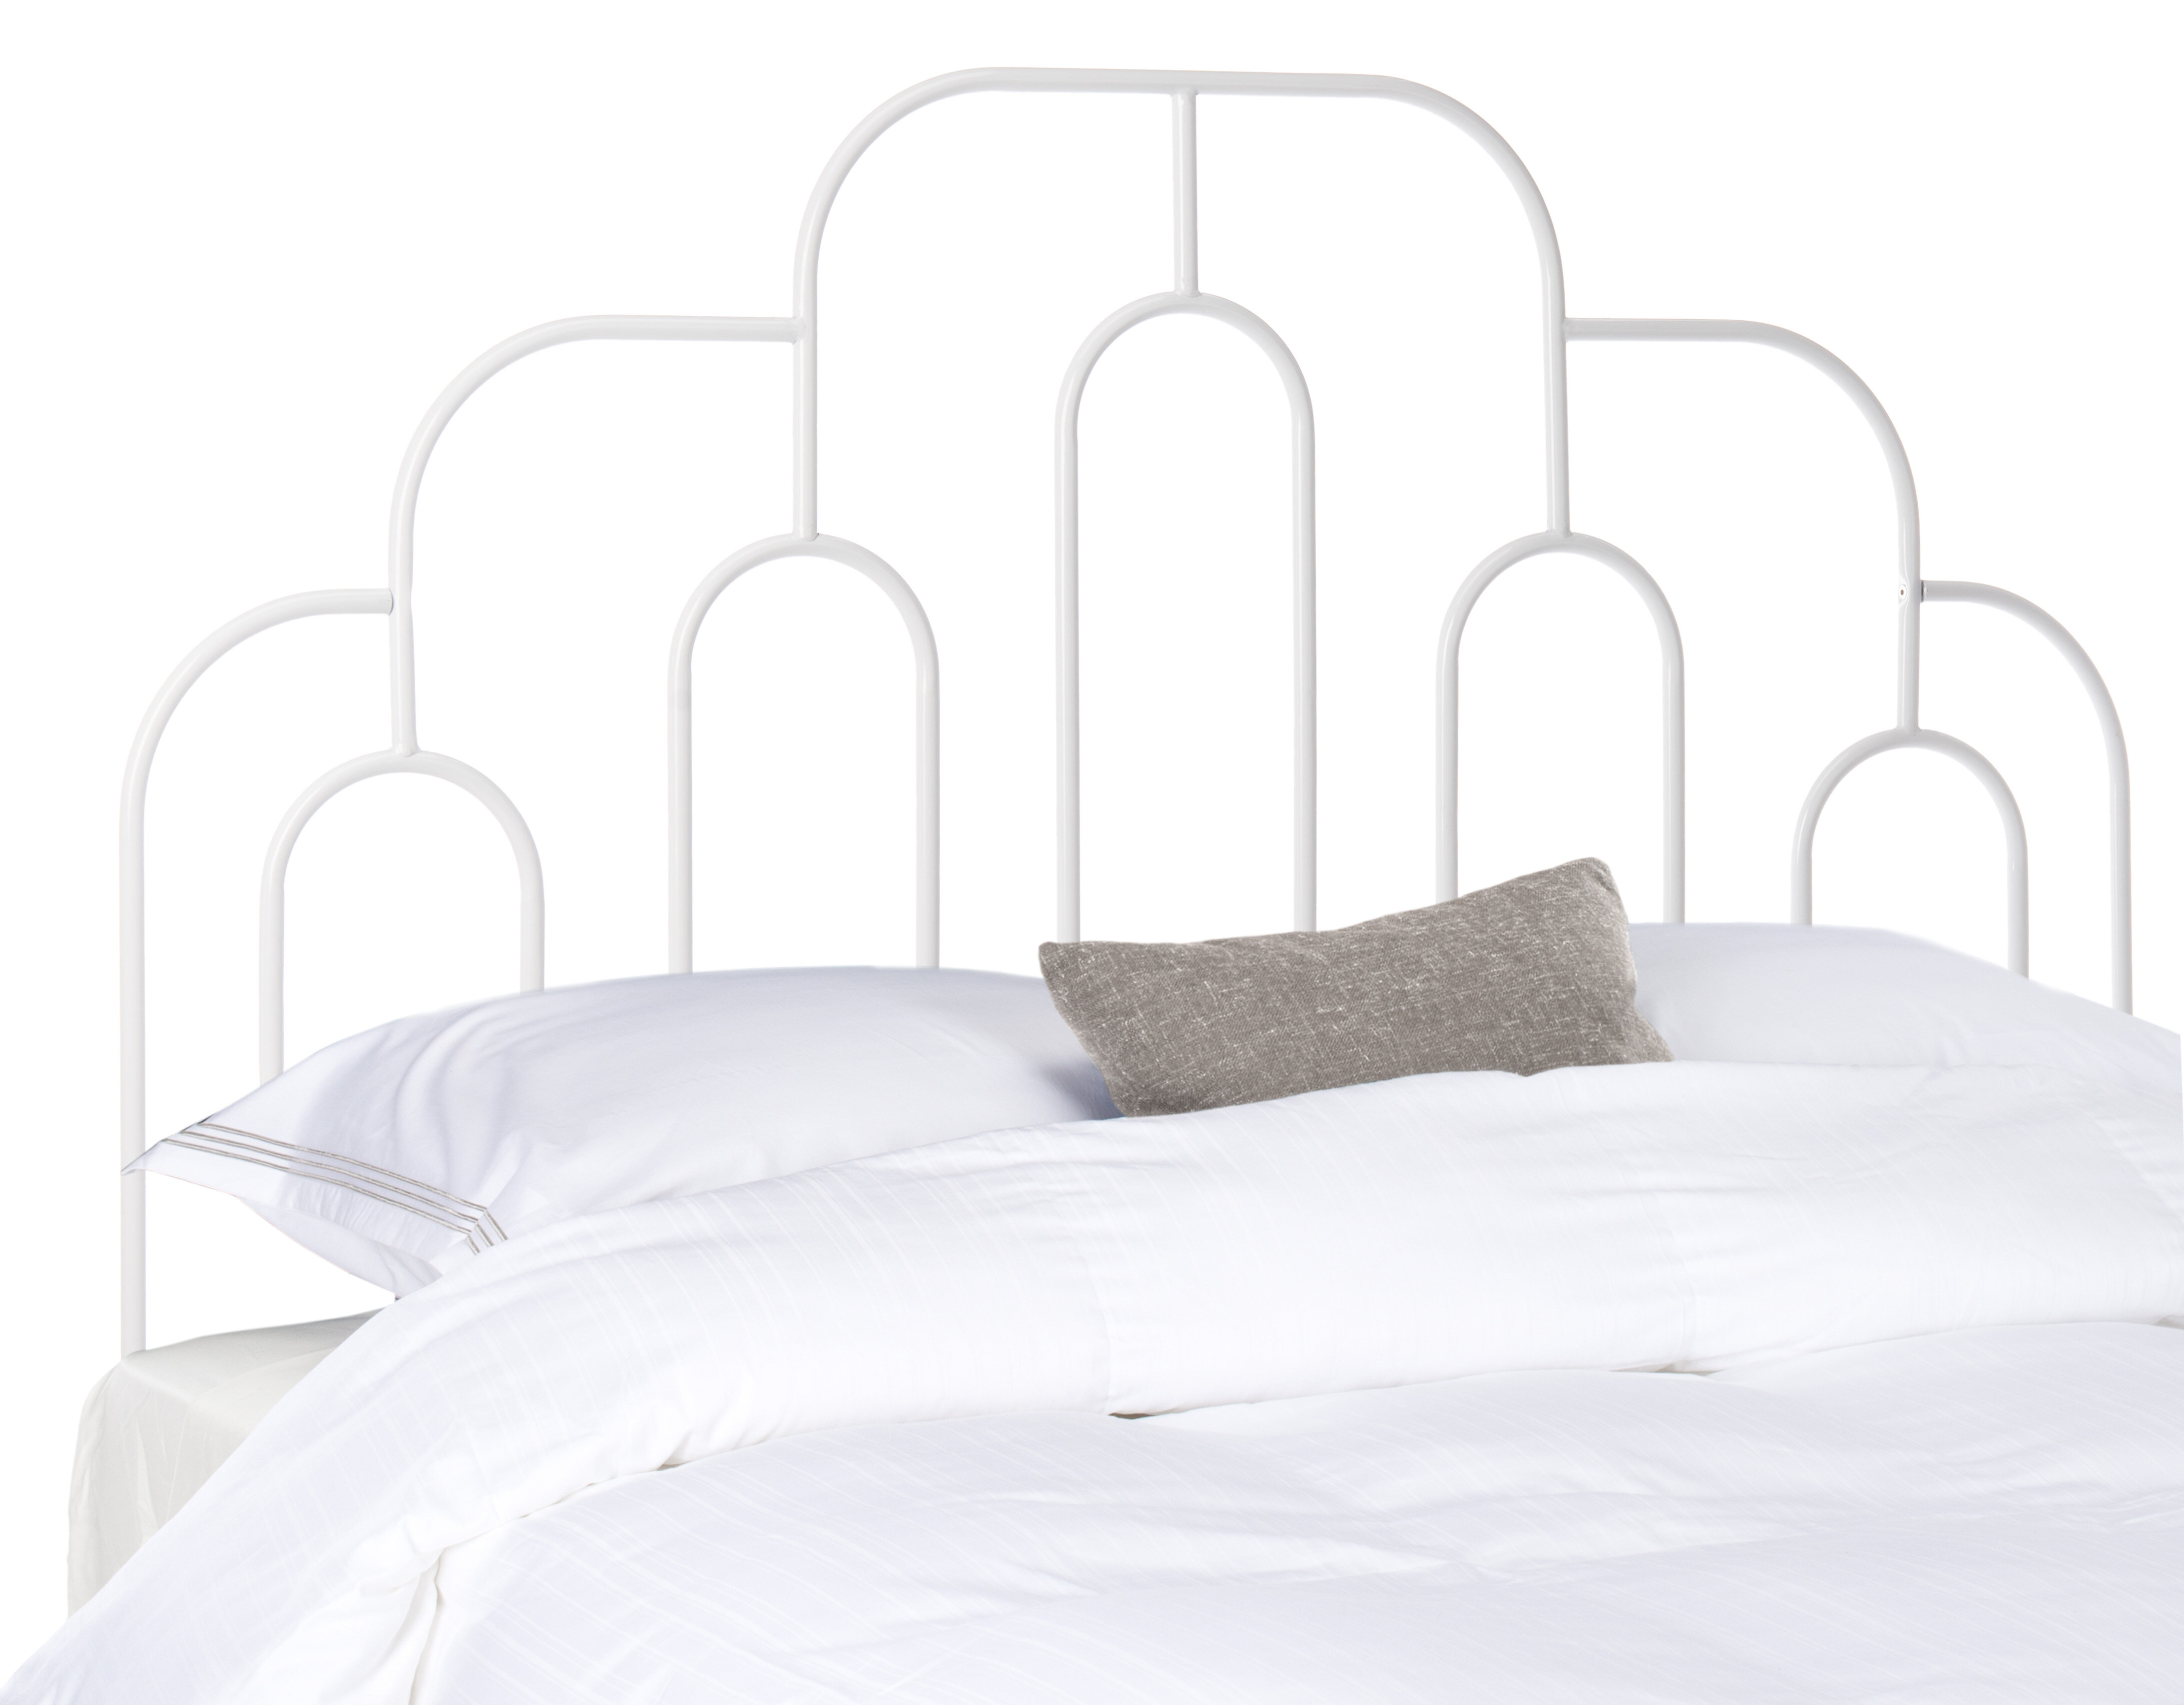 Wayfair Glam Headboards You Ll Love In 2021